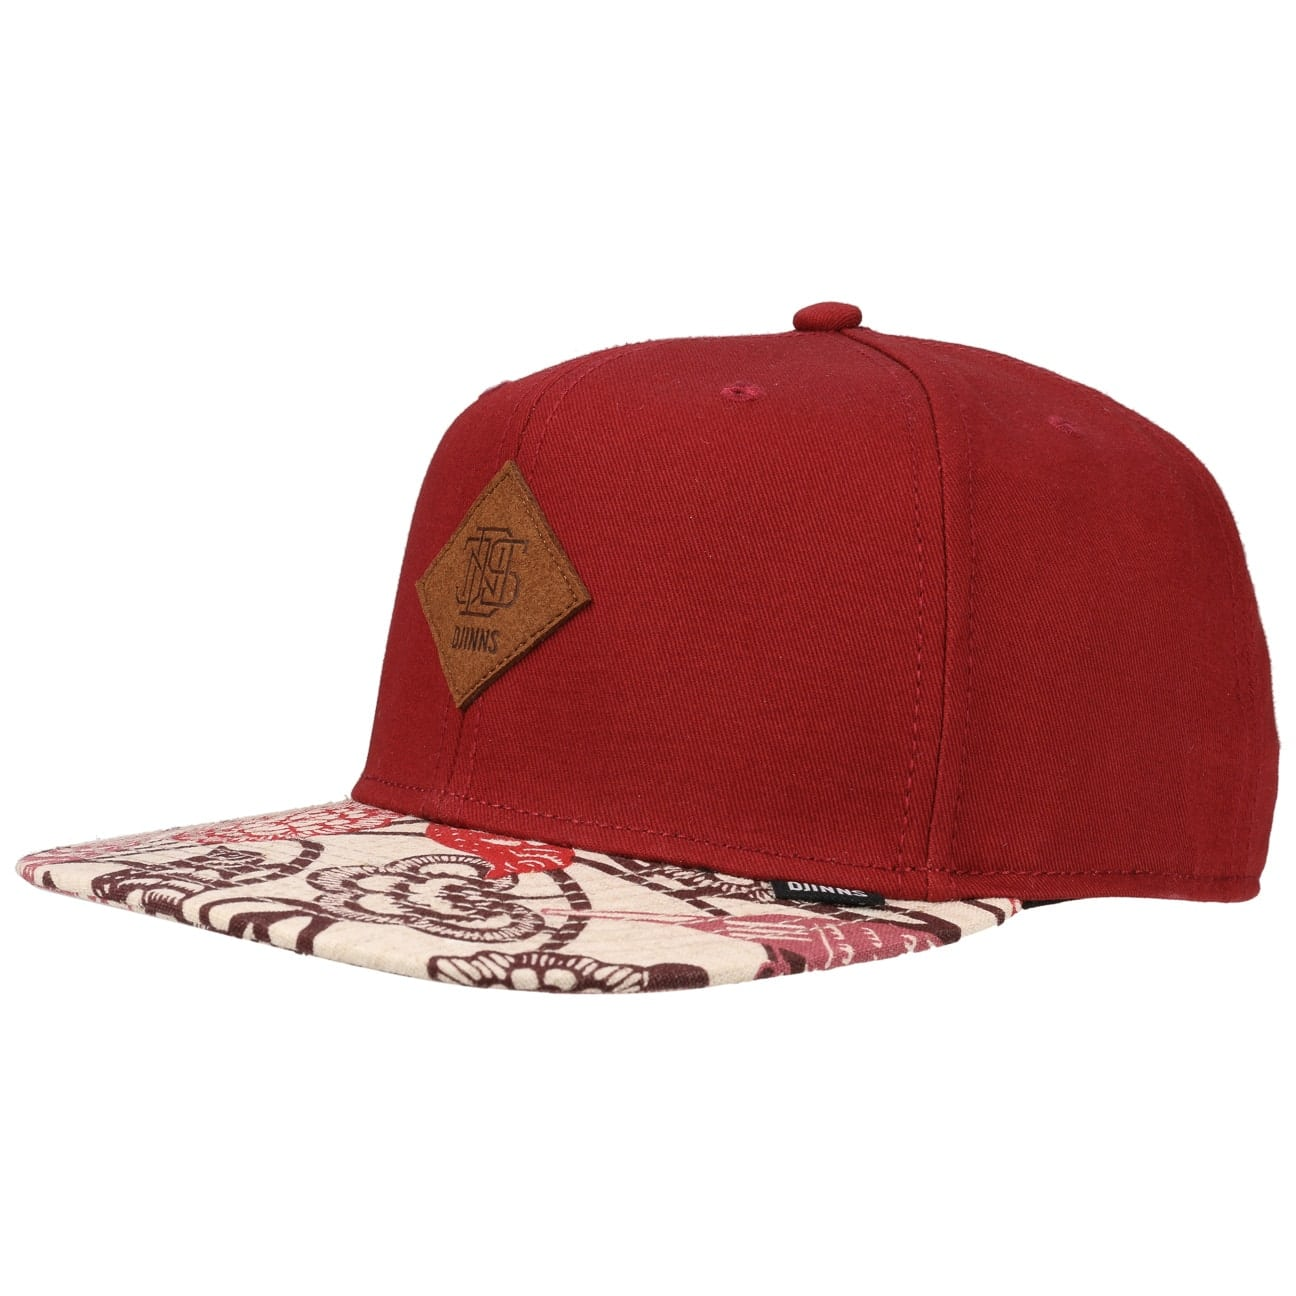 Gorra Birds 6P Strapback by Djinns  base cap